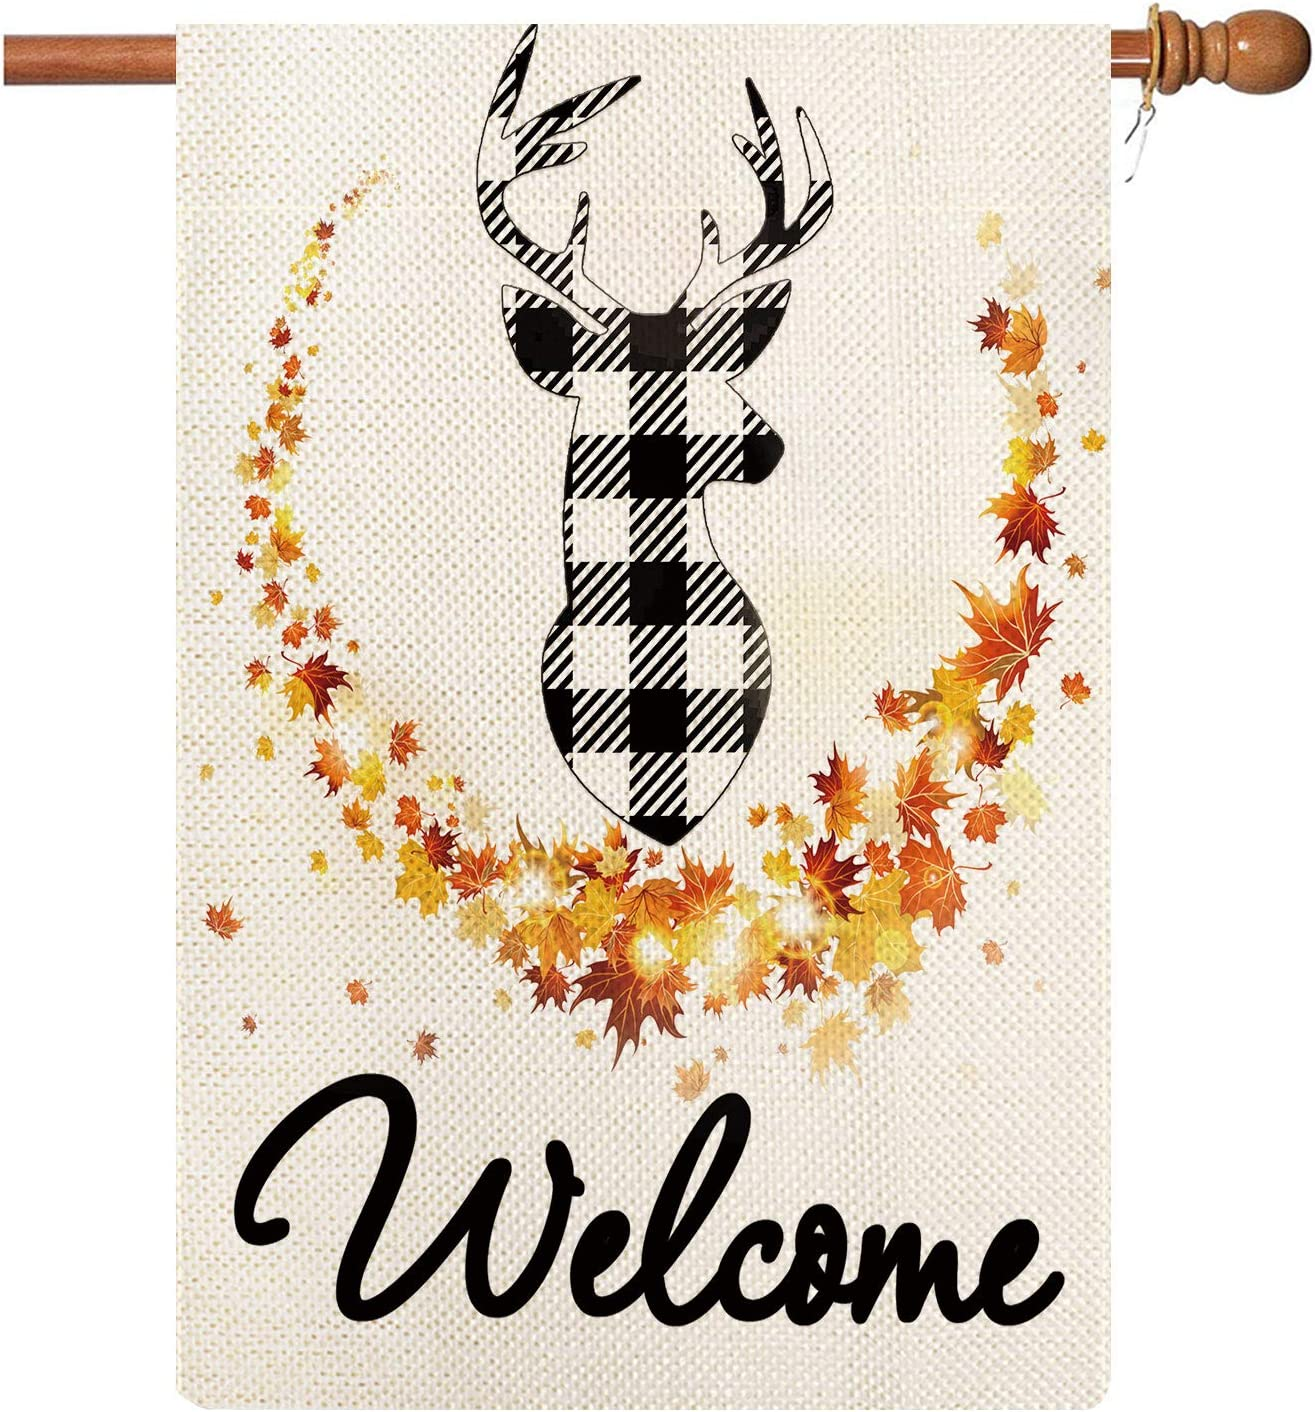 Coskaka Welcome Deer Garden Flag Fall Maple Leaf Deer Outside Decor Vertical Double Sided Autumn House Yard Lawn Flag Outdoor Decor 12.5x18 Inch